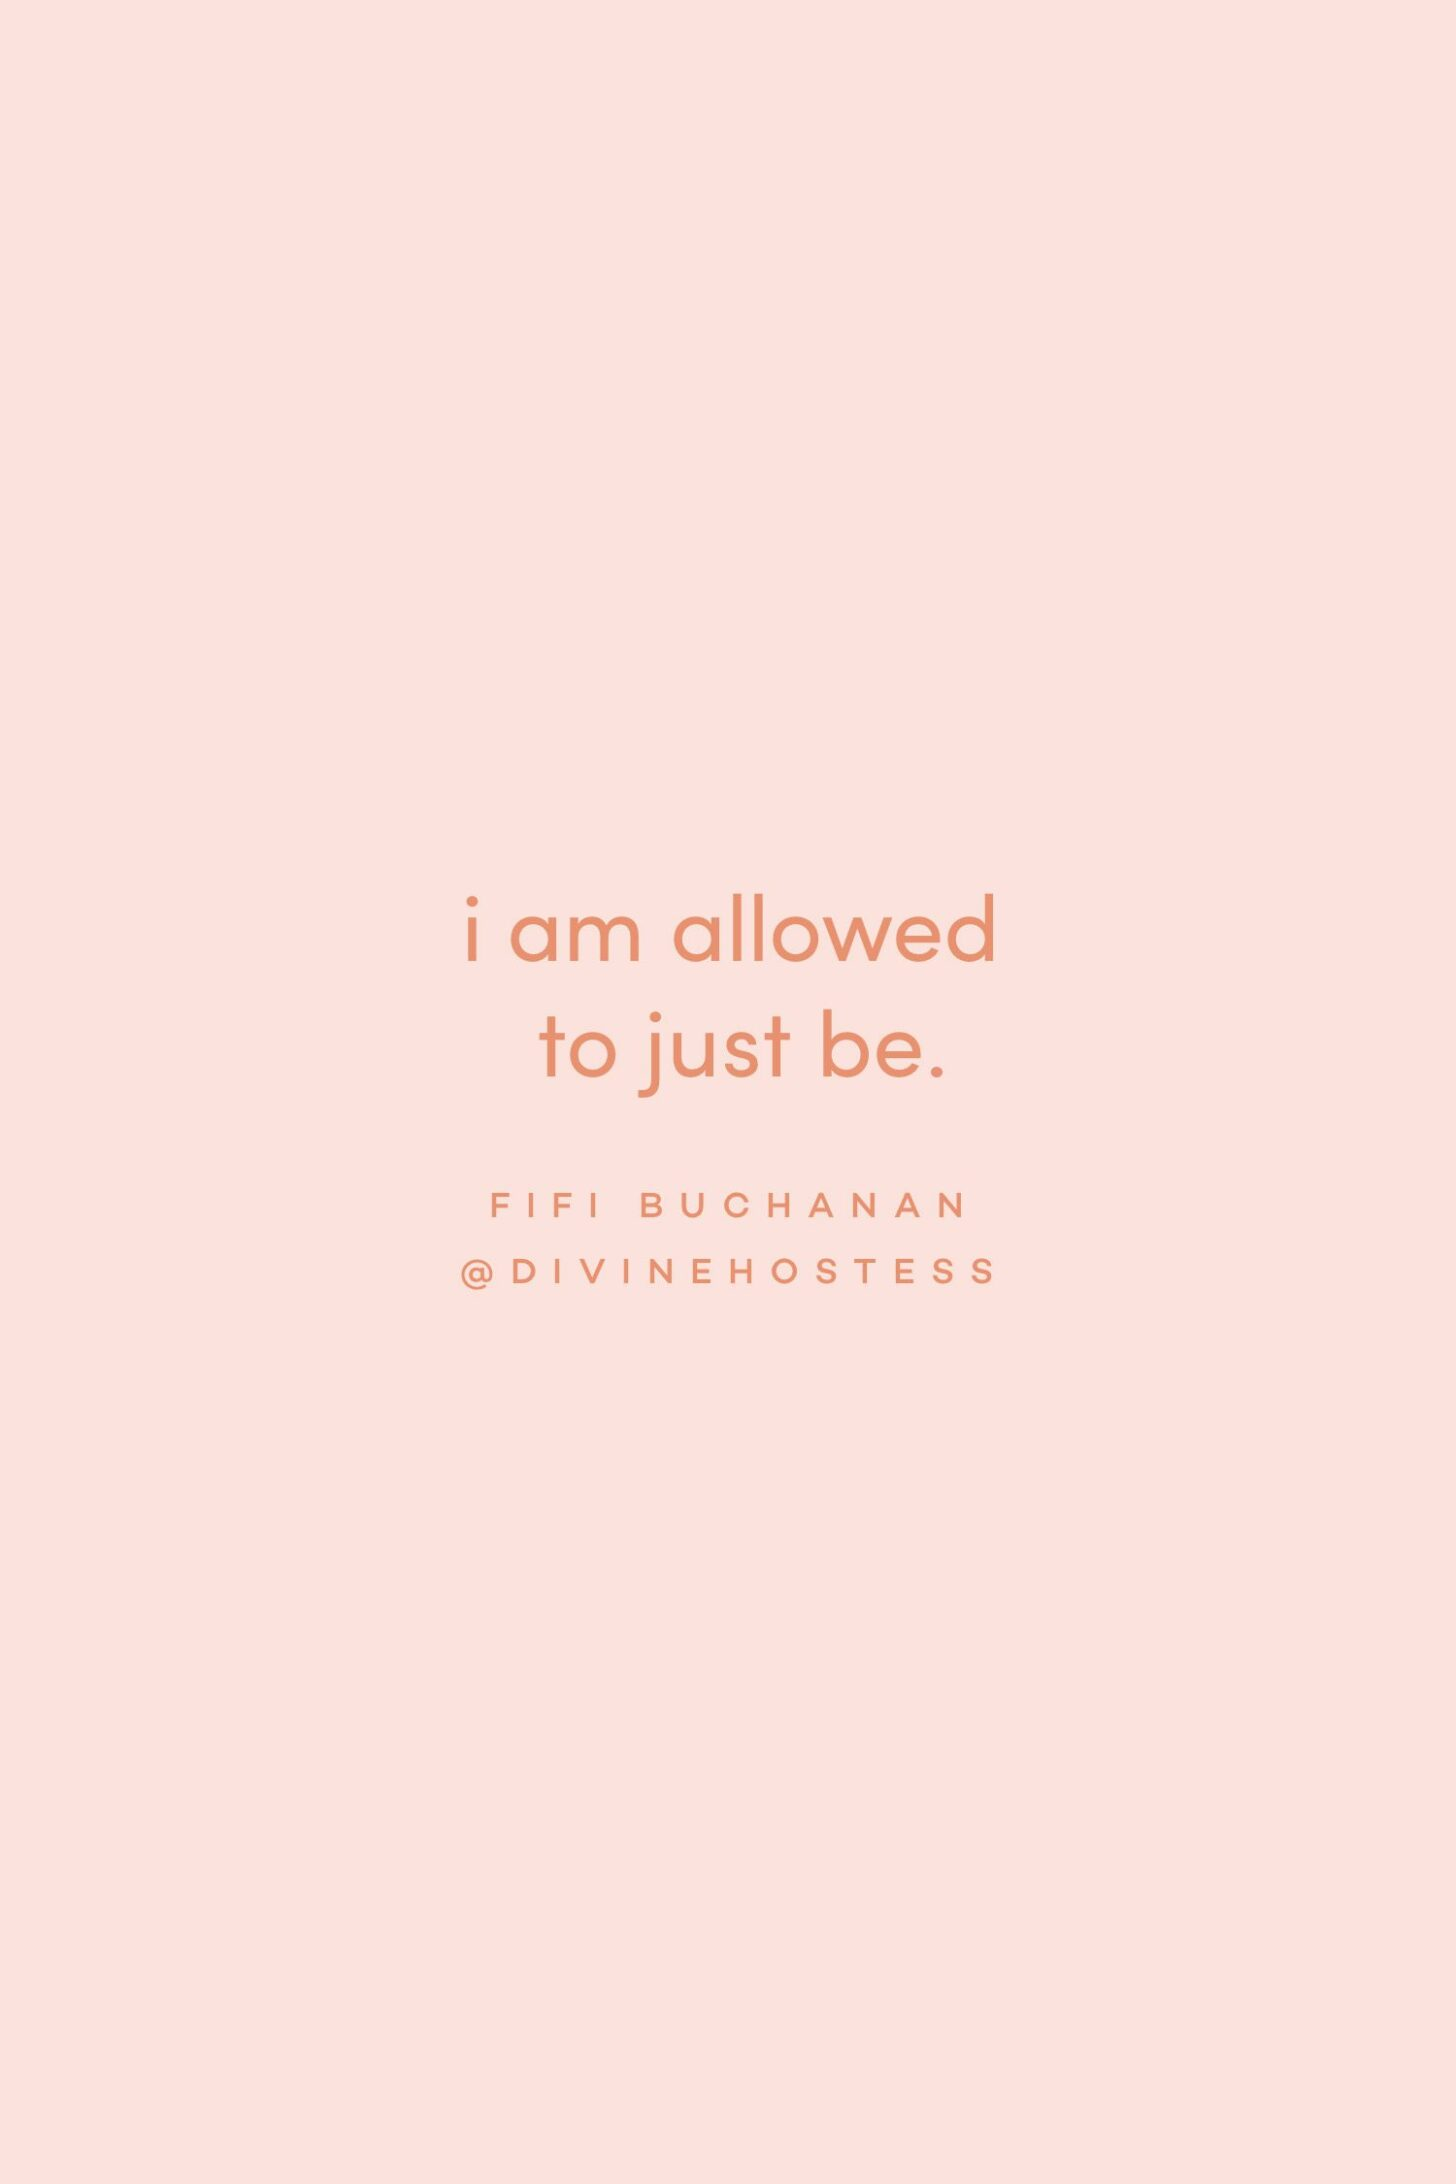 Quote on just being by Fifi Buchanan on the Feel Good Effect Podcast #realfoodwholelife #feelgoodeffectpodcast #positivityquote #motivationalquote #inspirationalquote #humanrightsquote #mindfulnessquote #selfcarequote #selfcompassionquote #selfworthquote